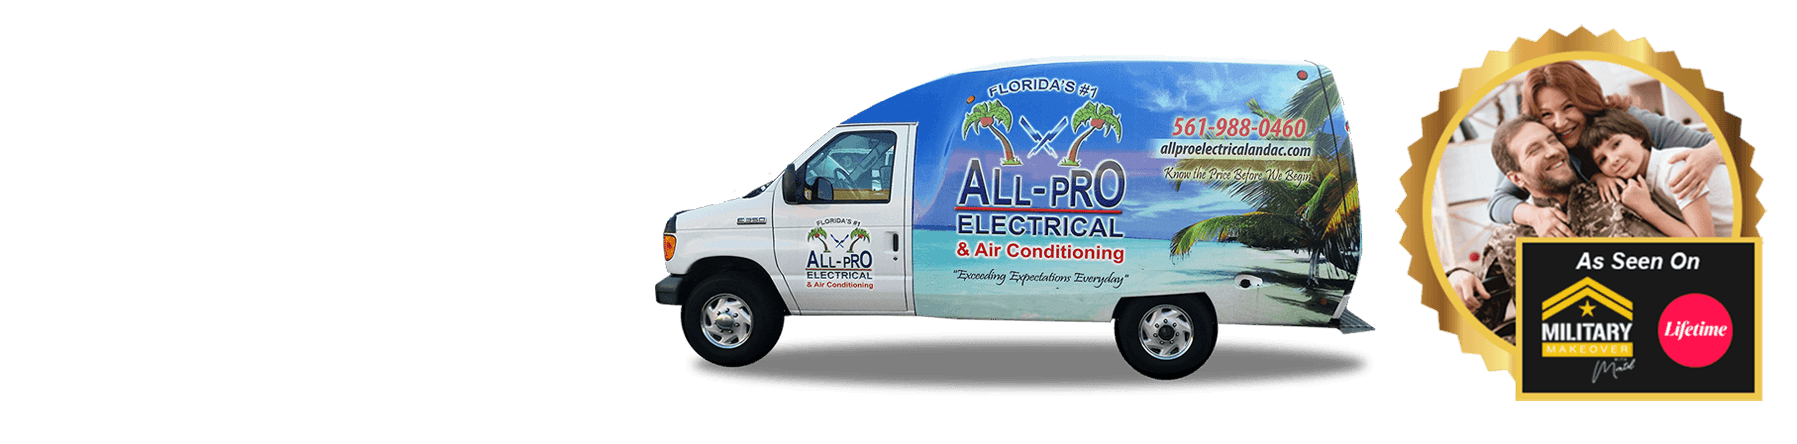 All-Pro Electrical & Air Conditioning Boca Raton Florida AC Financing